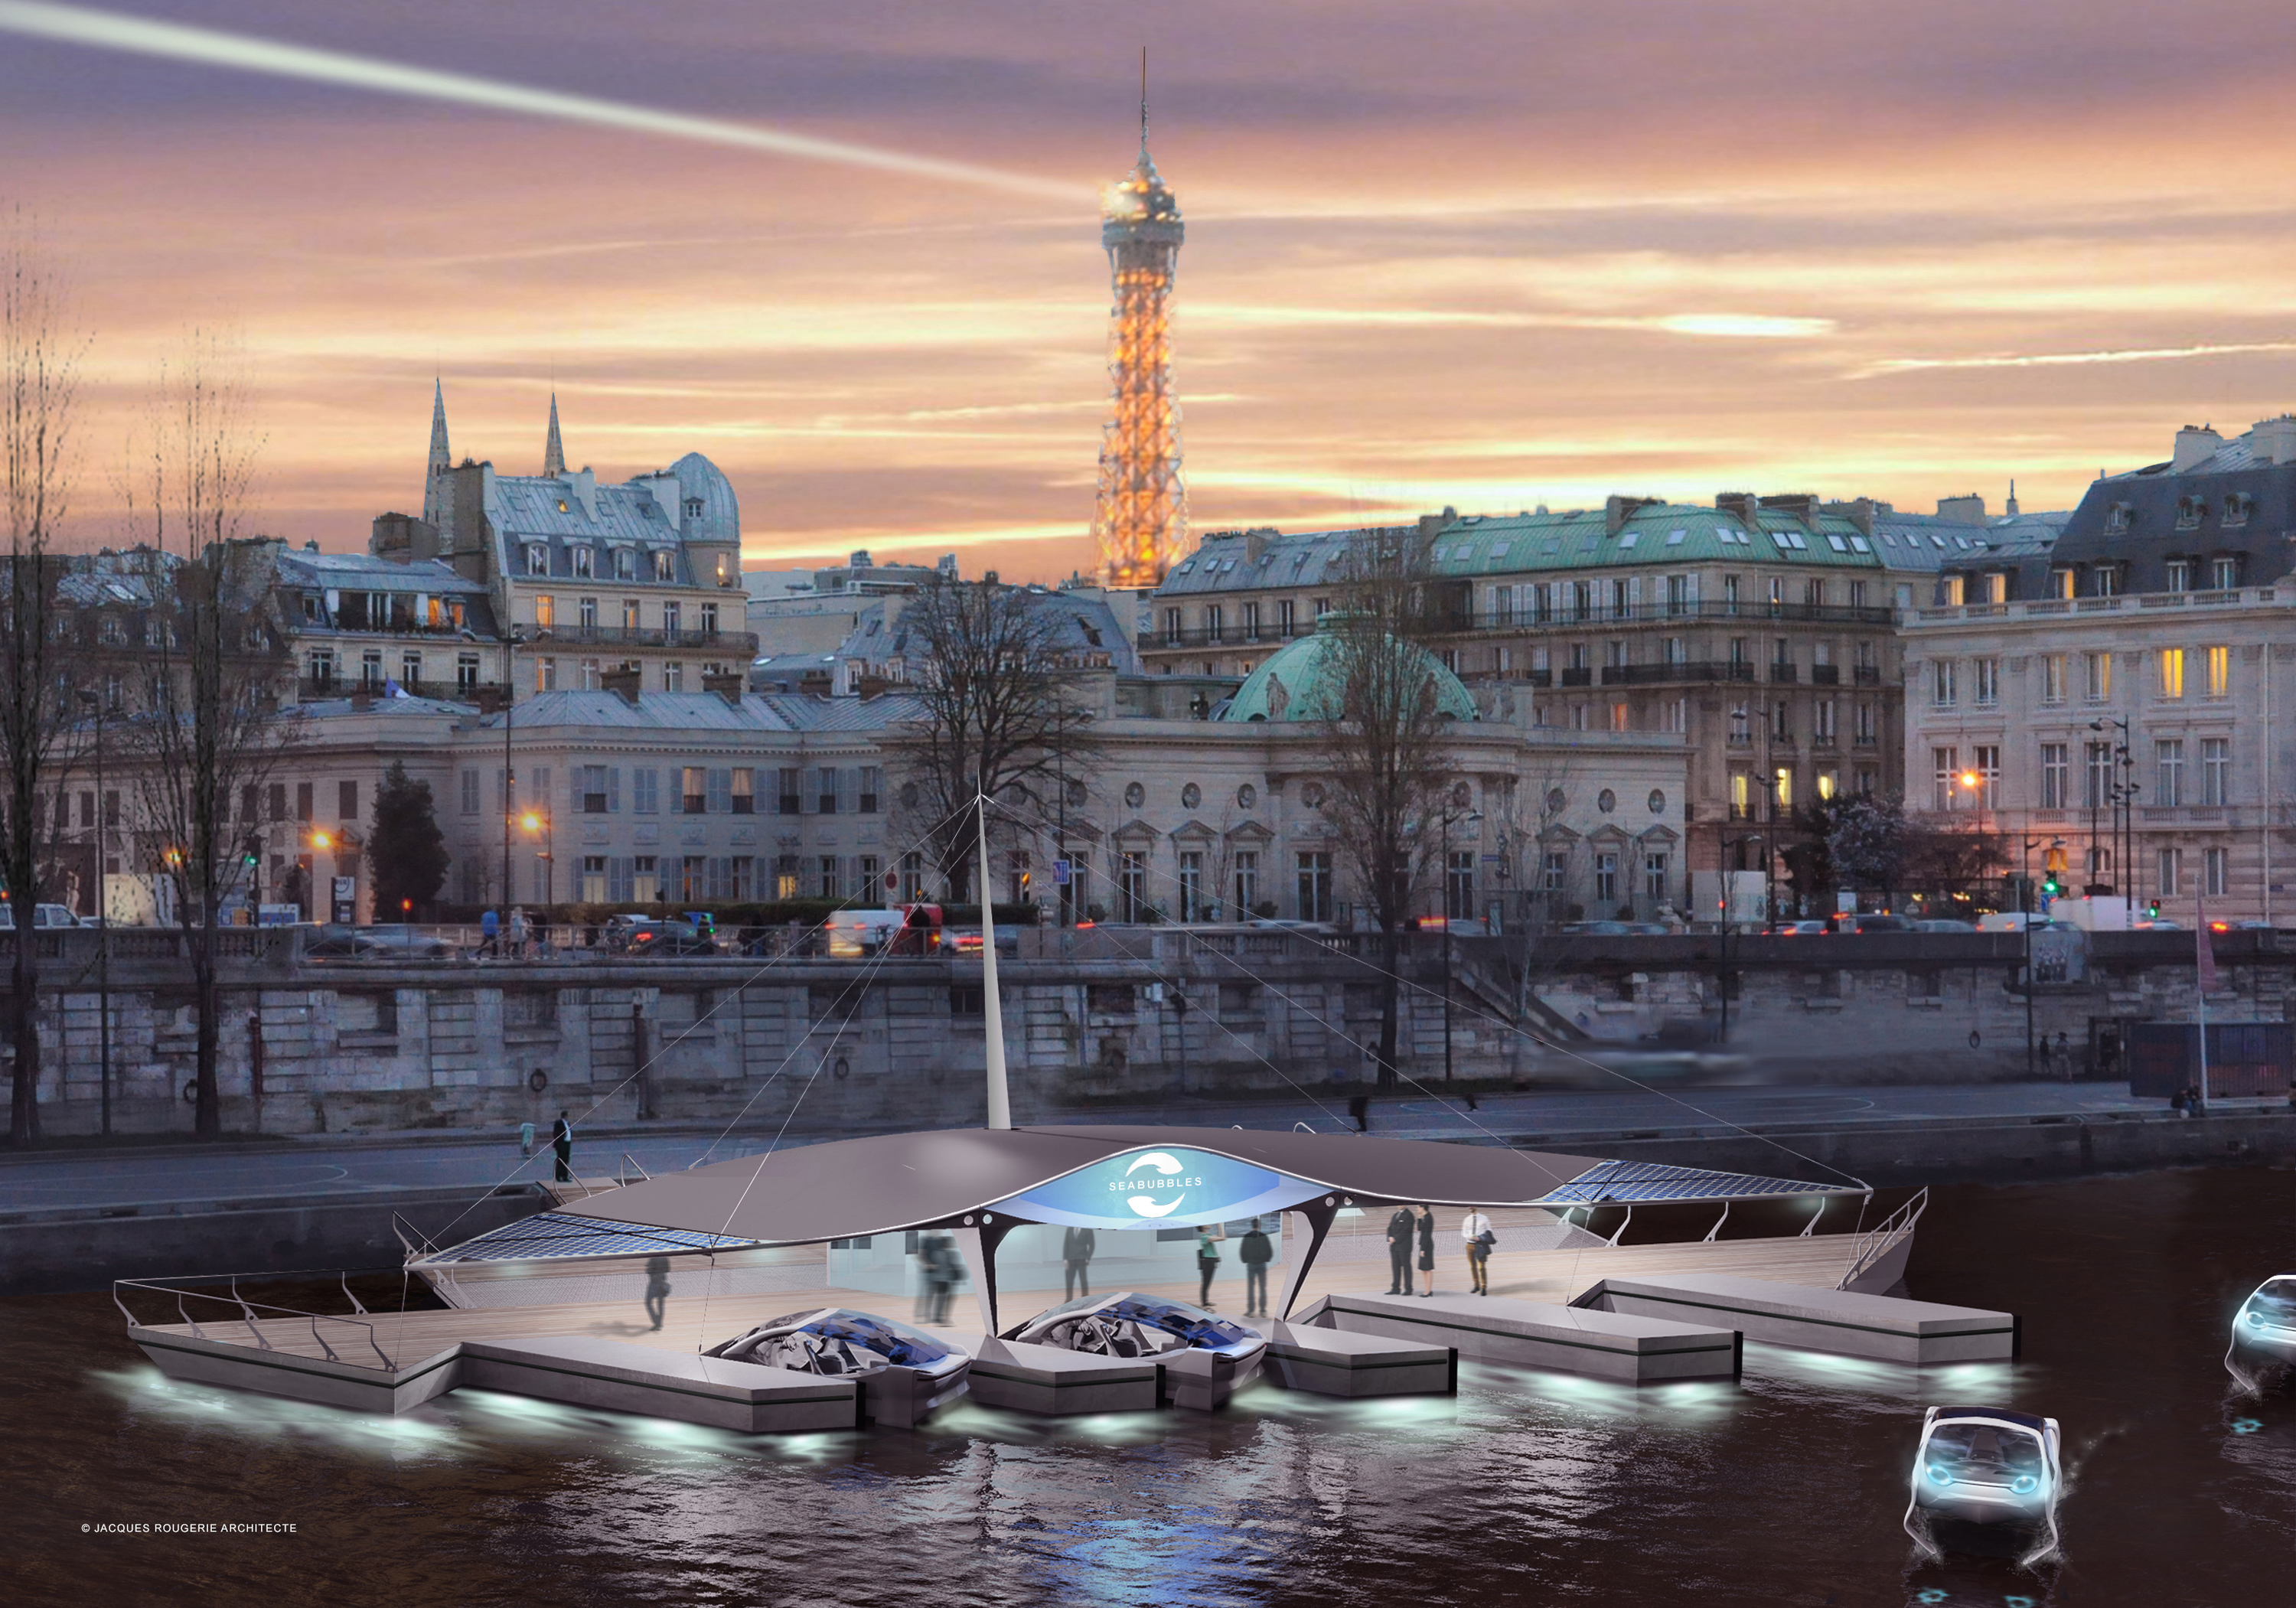 Paris's bubble taxis